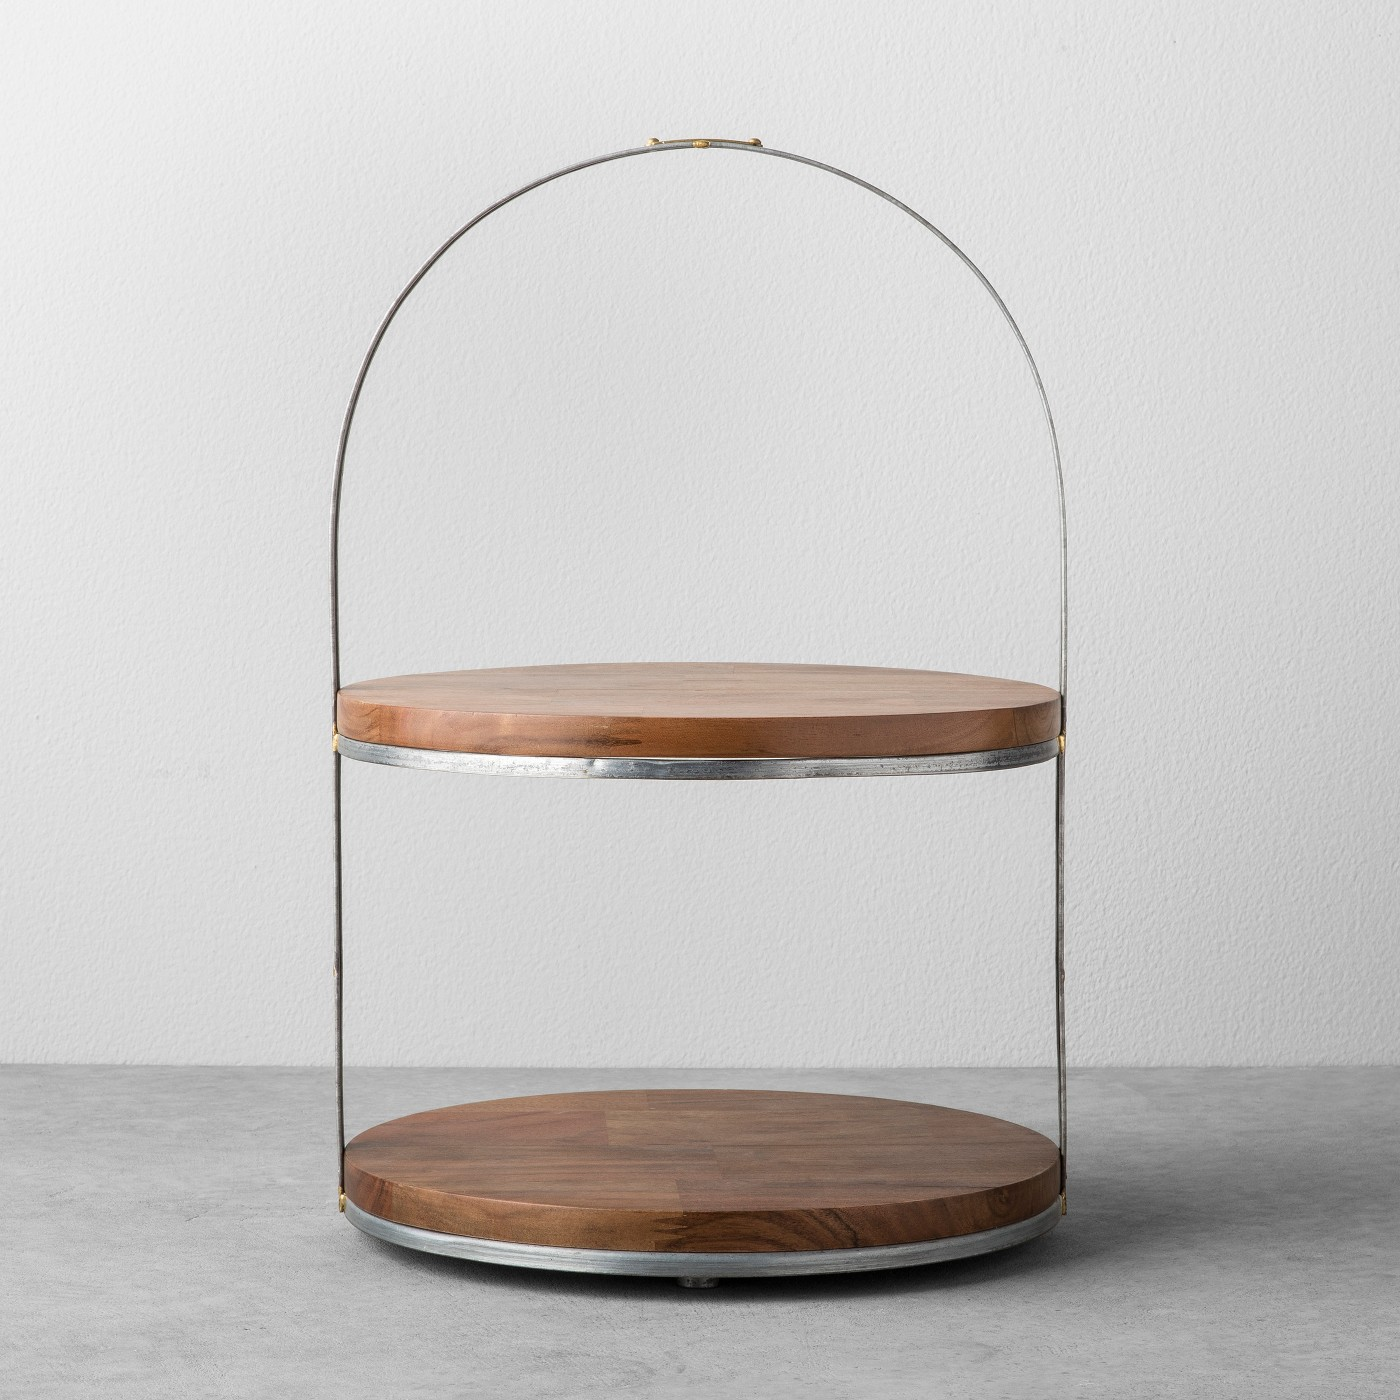 2-Tier Wood & Metal Cake Stand - Hearth & Hand™ with Magnolia - image 1 of 2